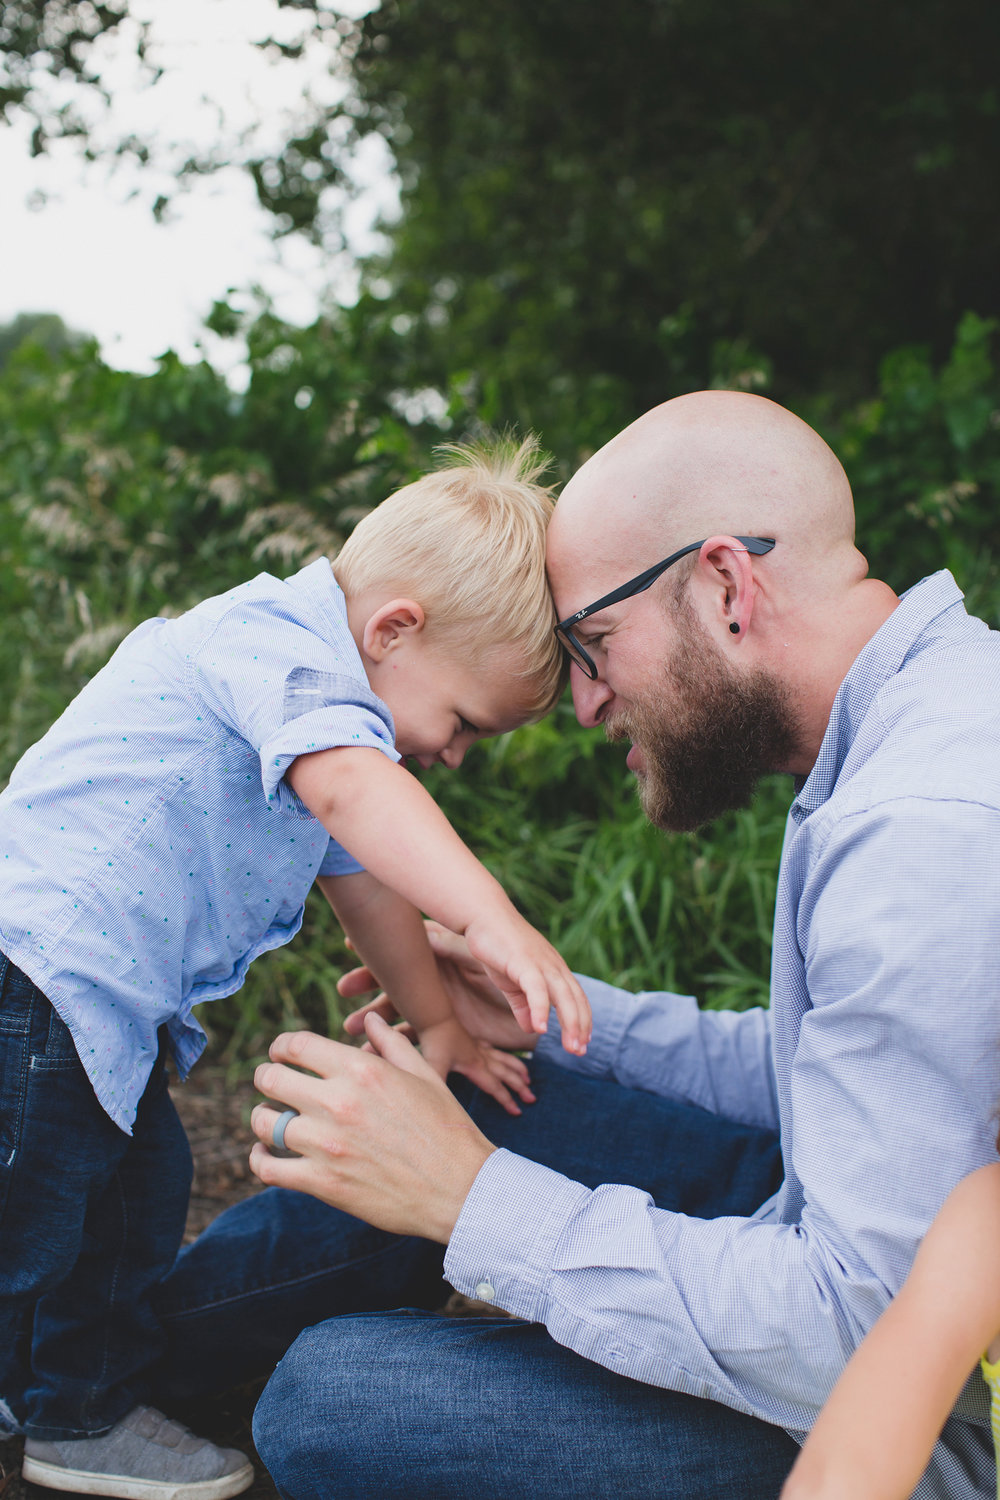 Jordan Edens Photography_Tri cities photographer_tri cities family photographer_kennewick photographer_richland photographer_travel photographer_iowa photographer_family photos_lifestyle family_child photographer_memories and moments_15